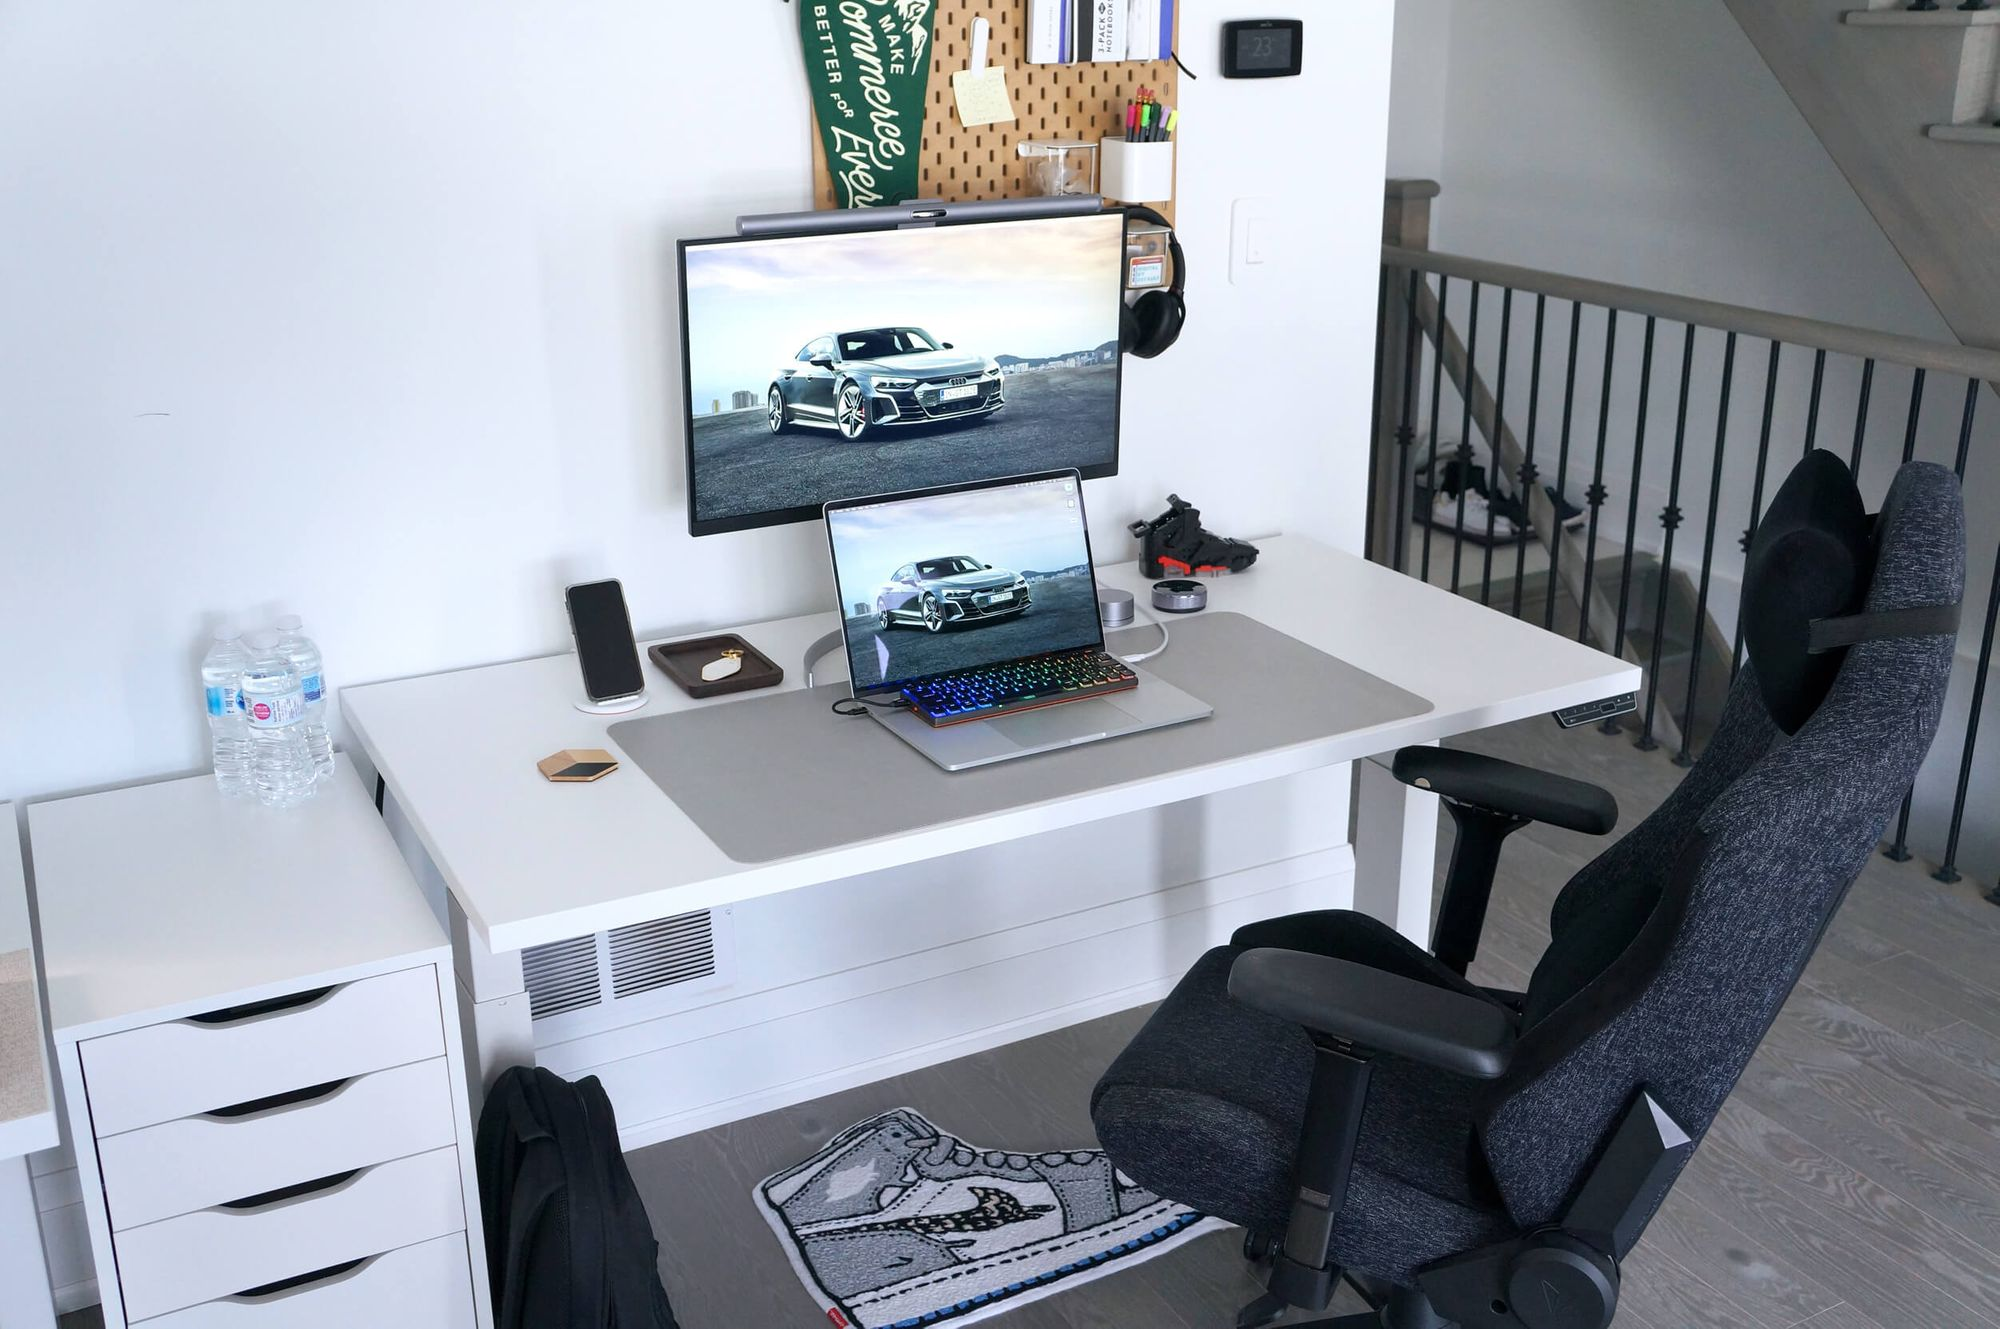 Shopify, Kevin's current employer, provided him with a desk and a chair